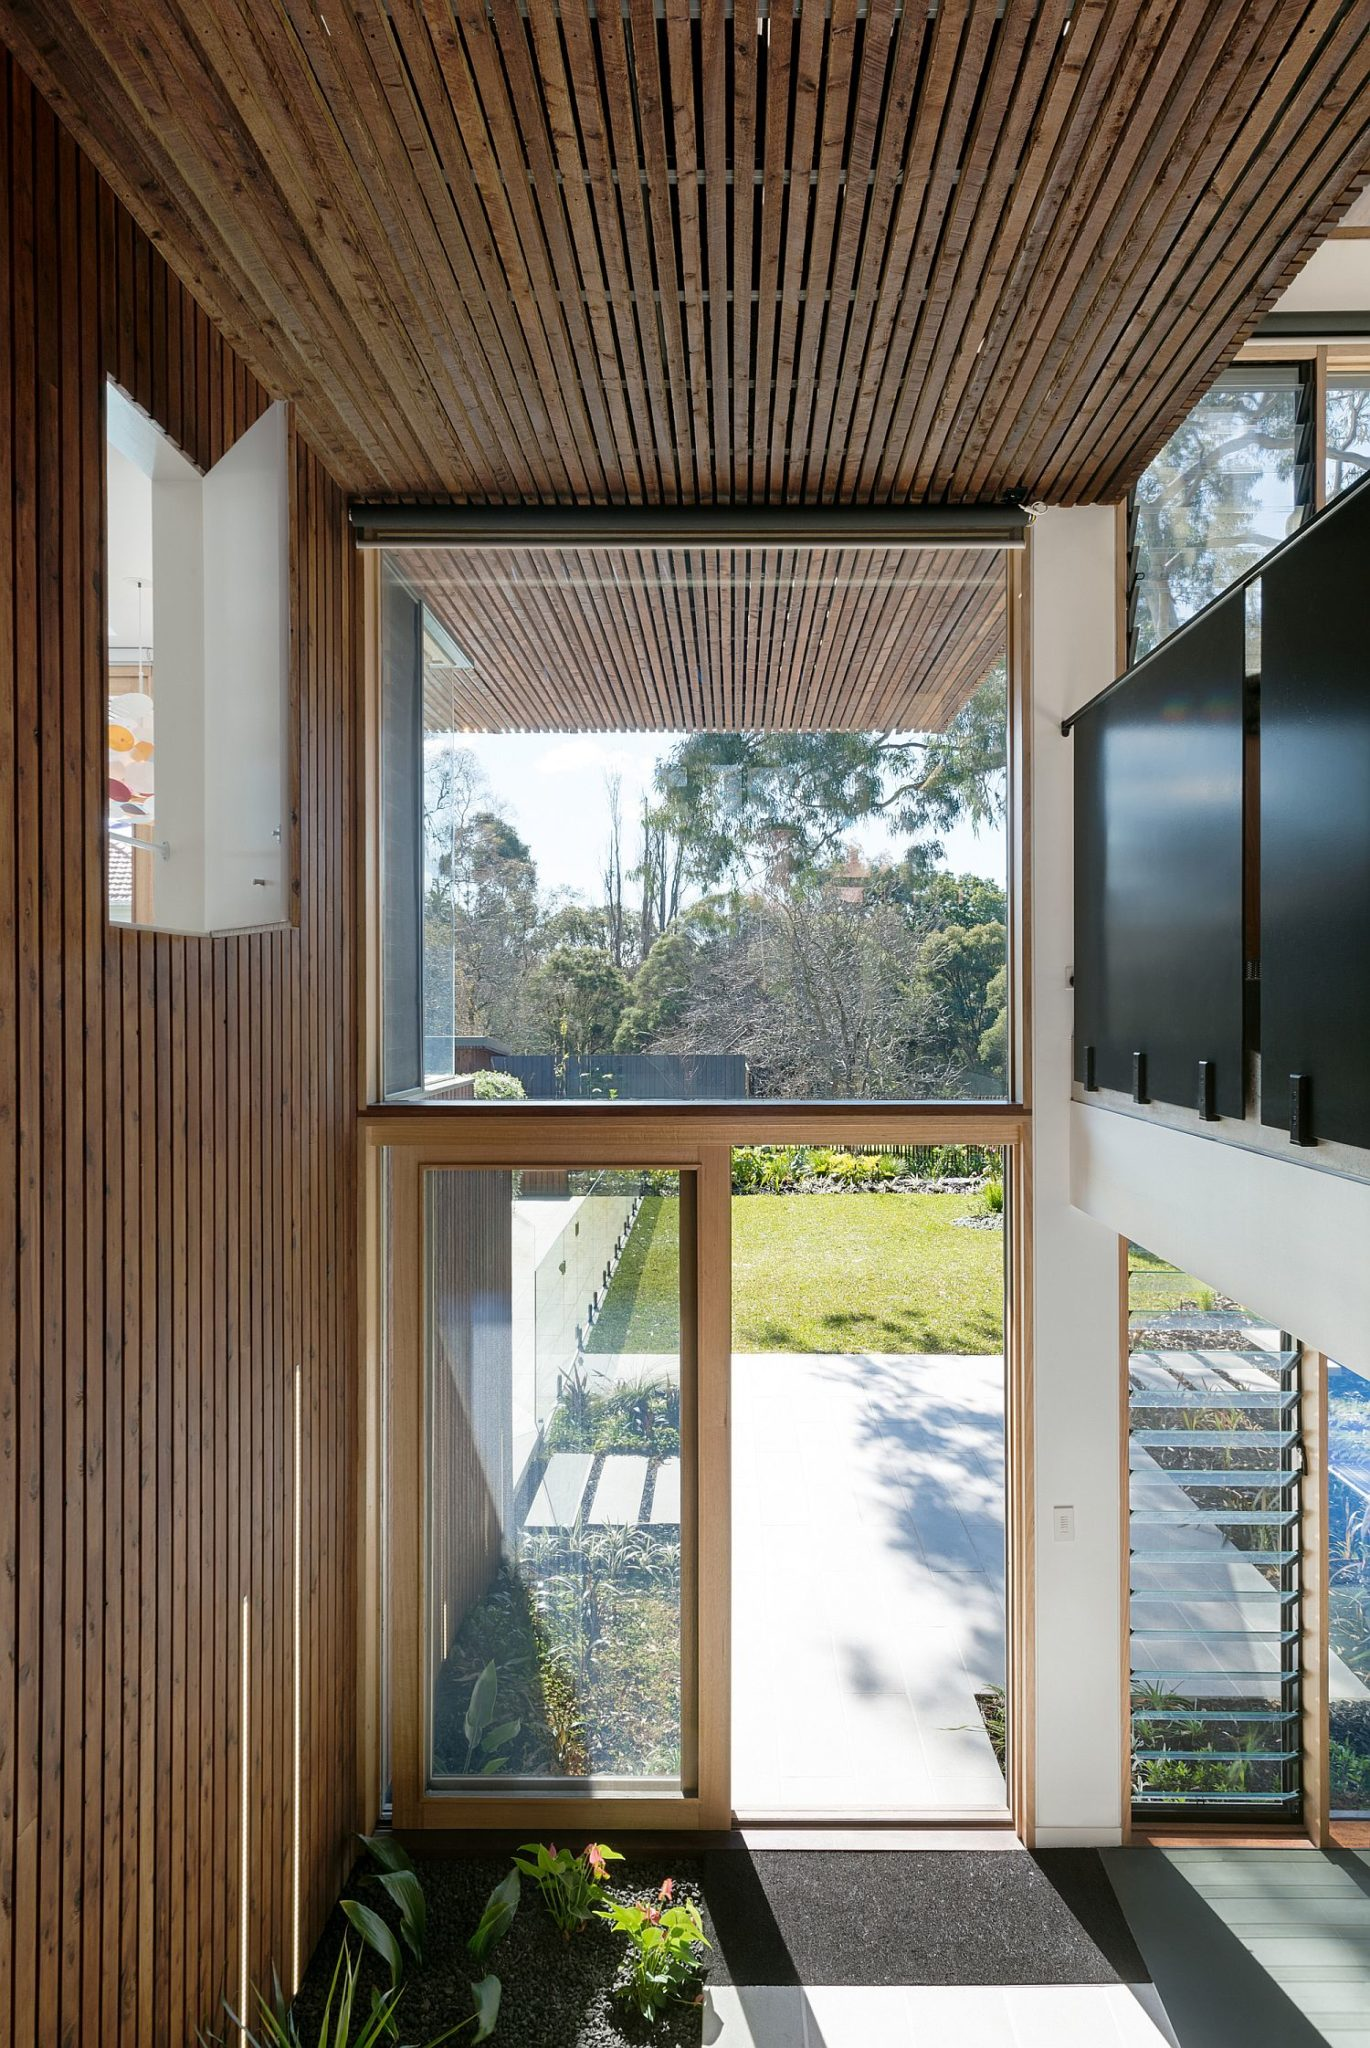 Passive solar heating and cooling techniques cut back on energy needs of the home